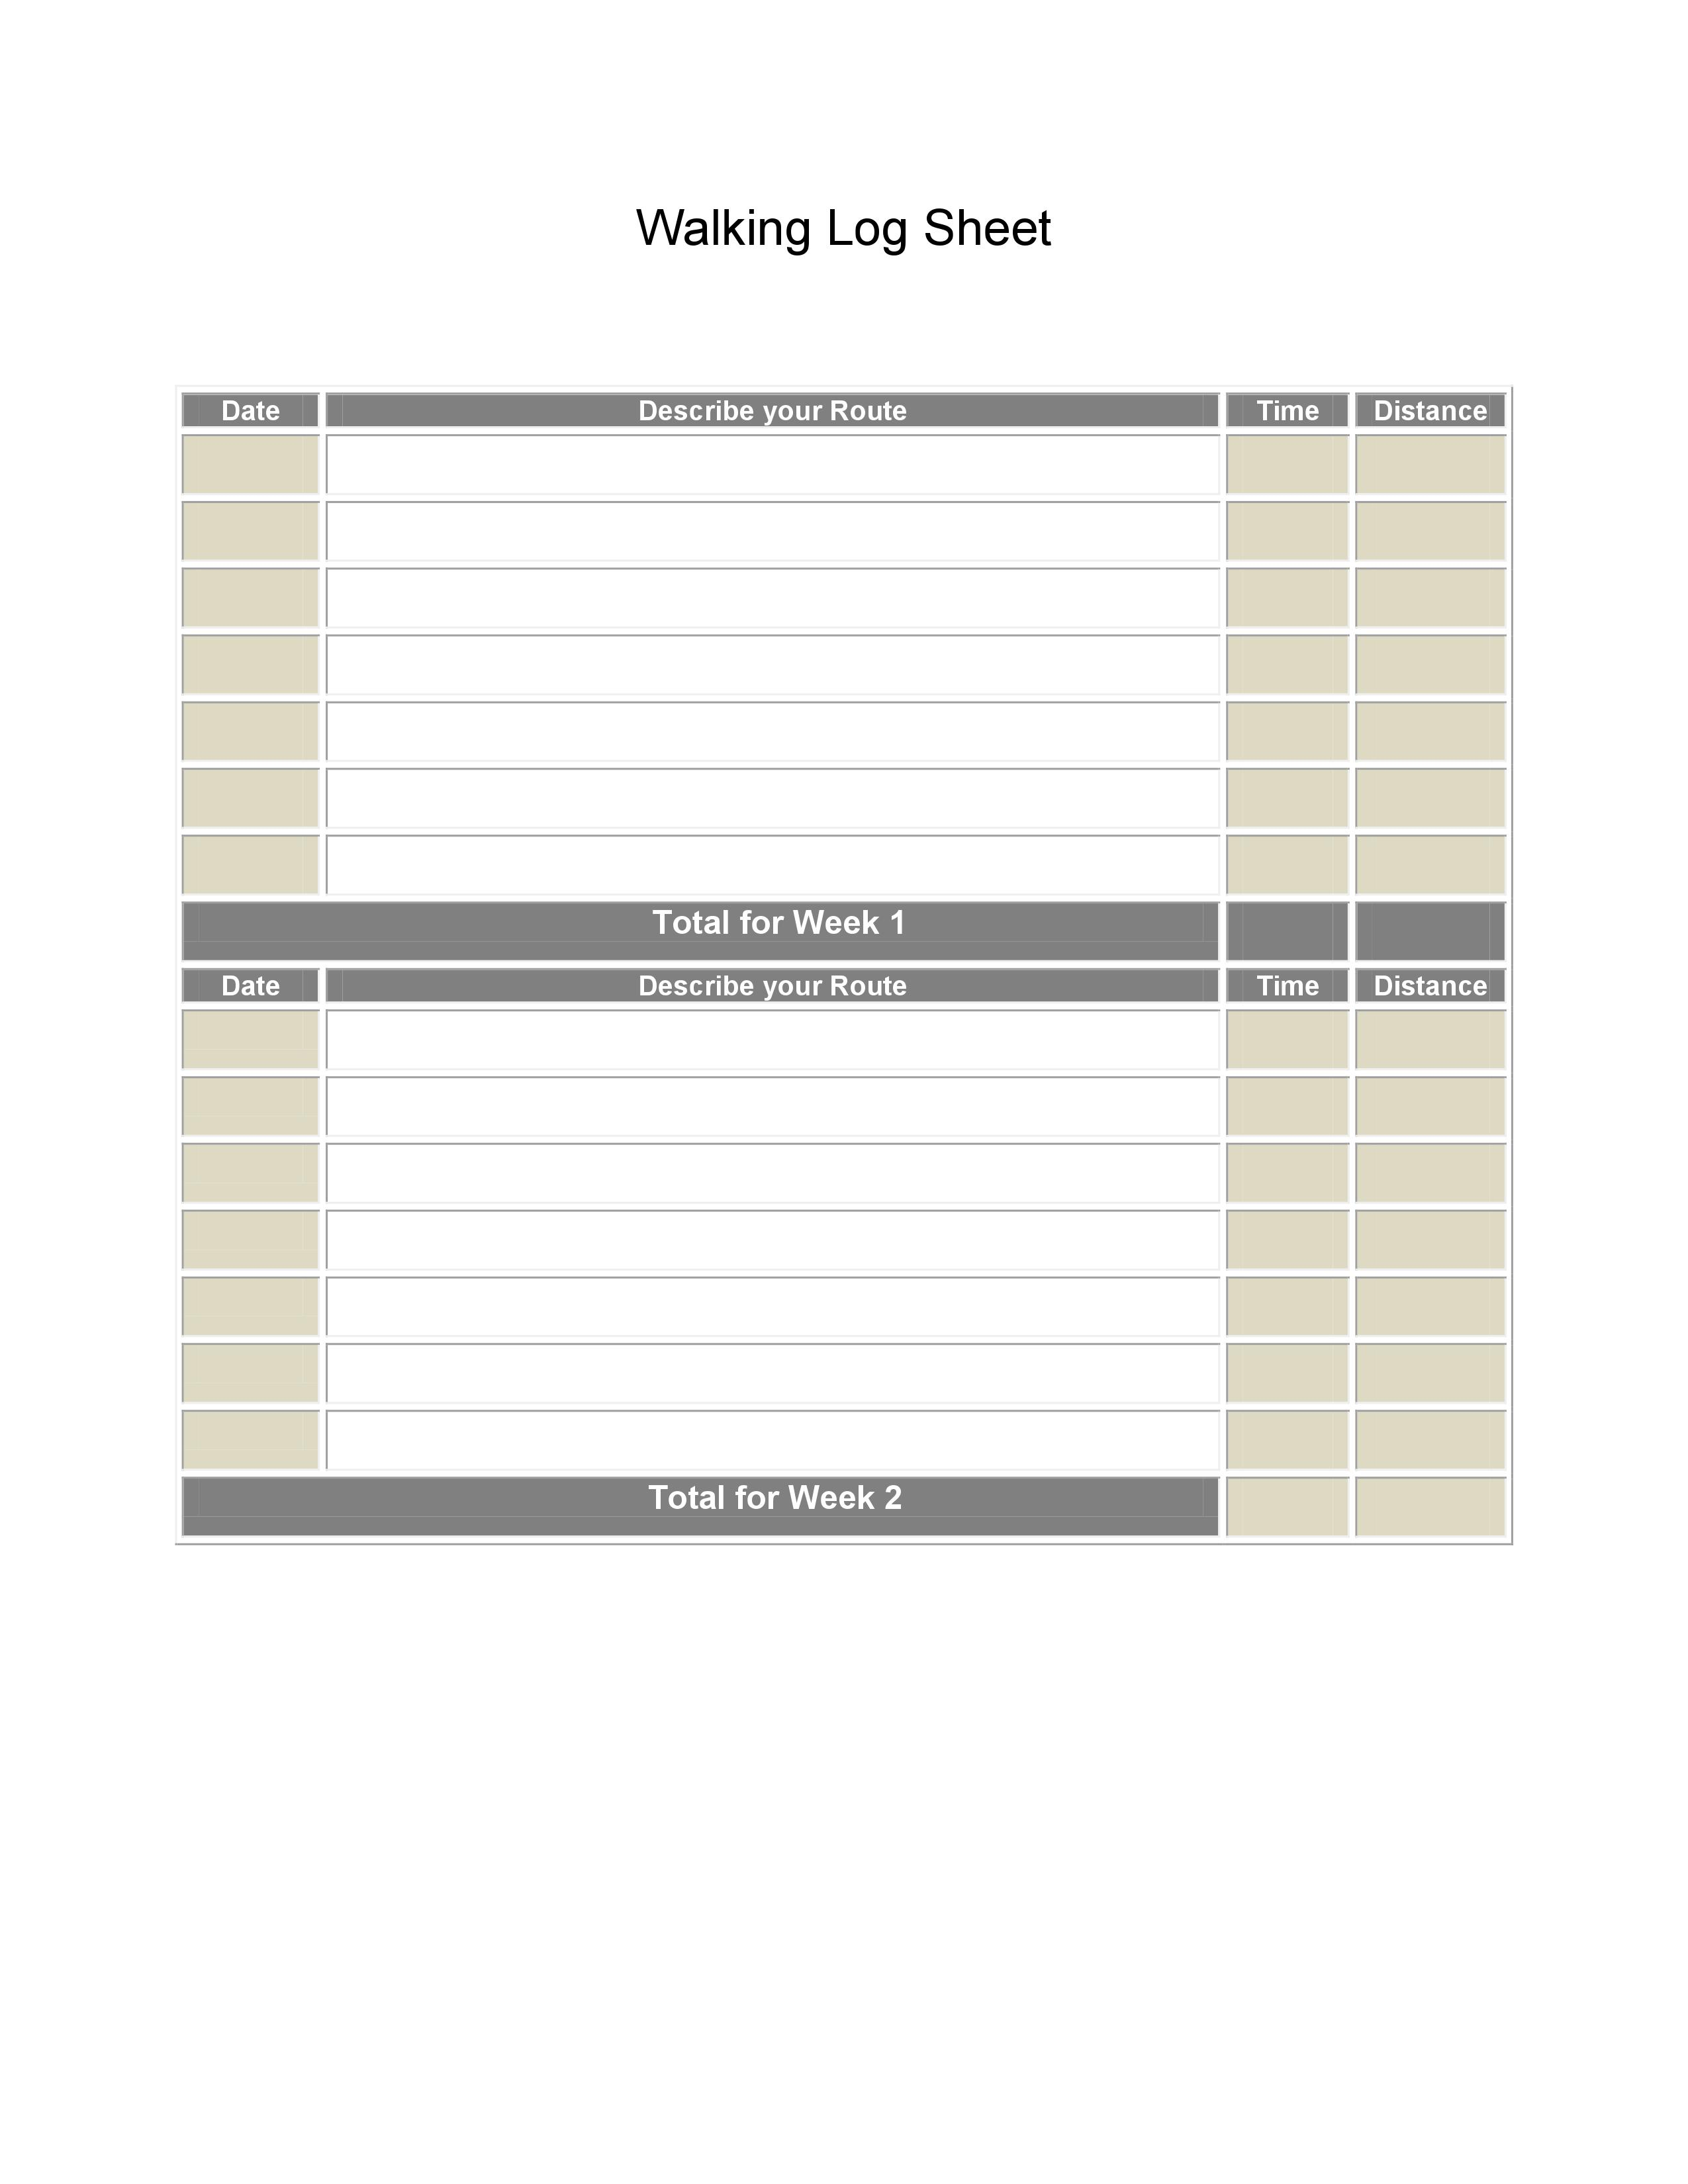 photo about Log Sheets Template called Printable Strolling Log Sheets